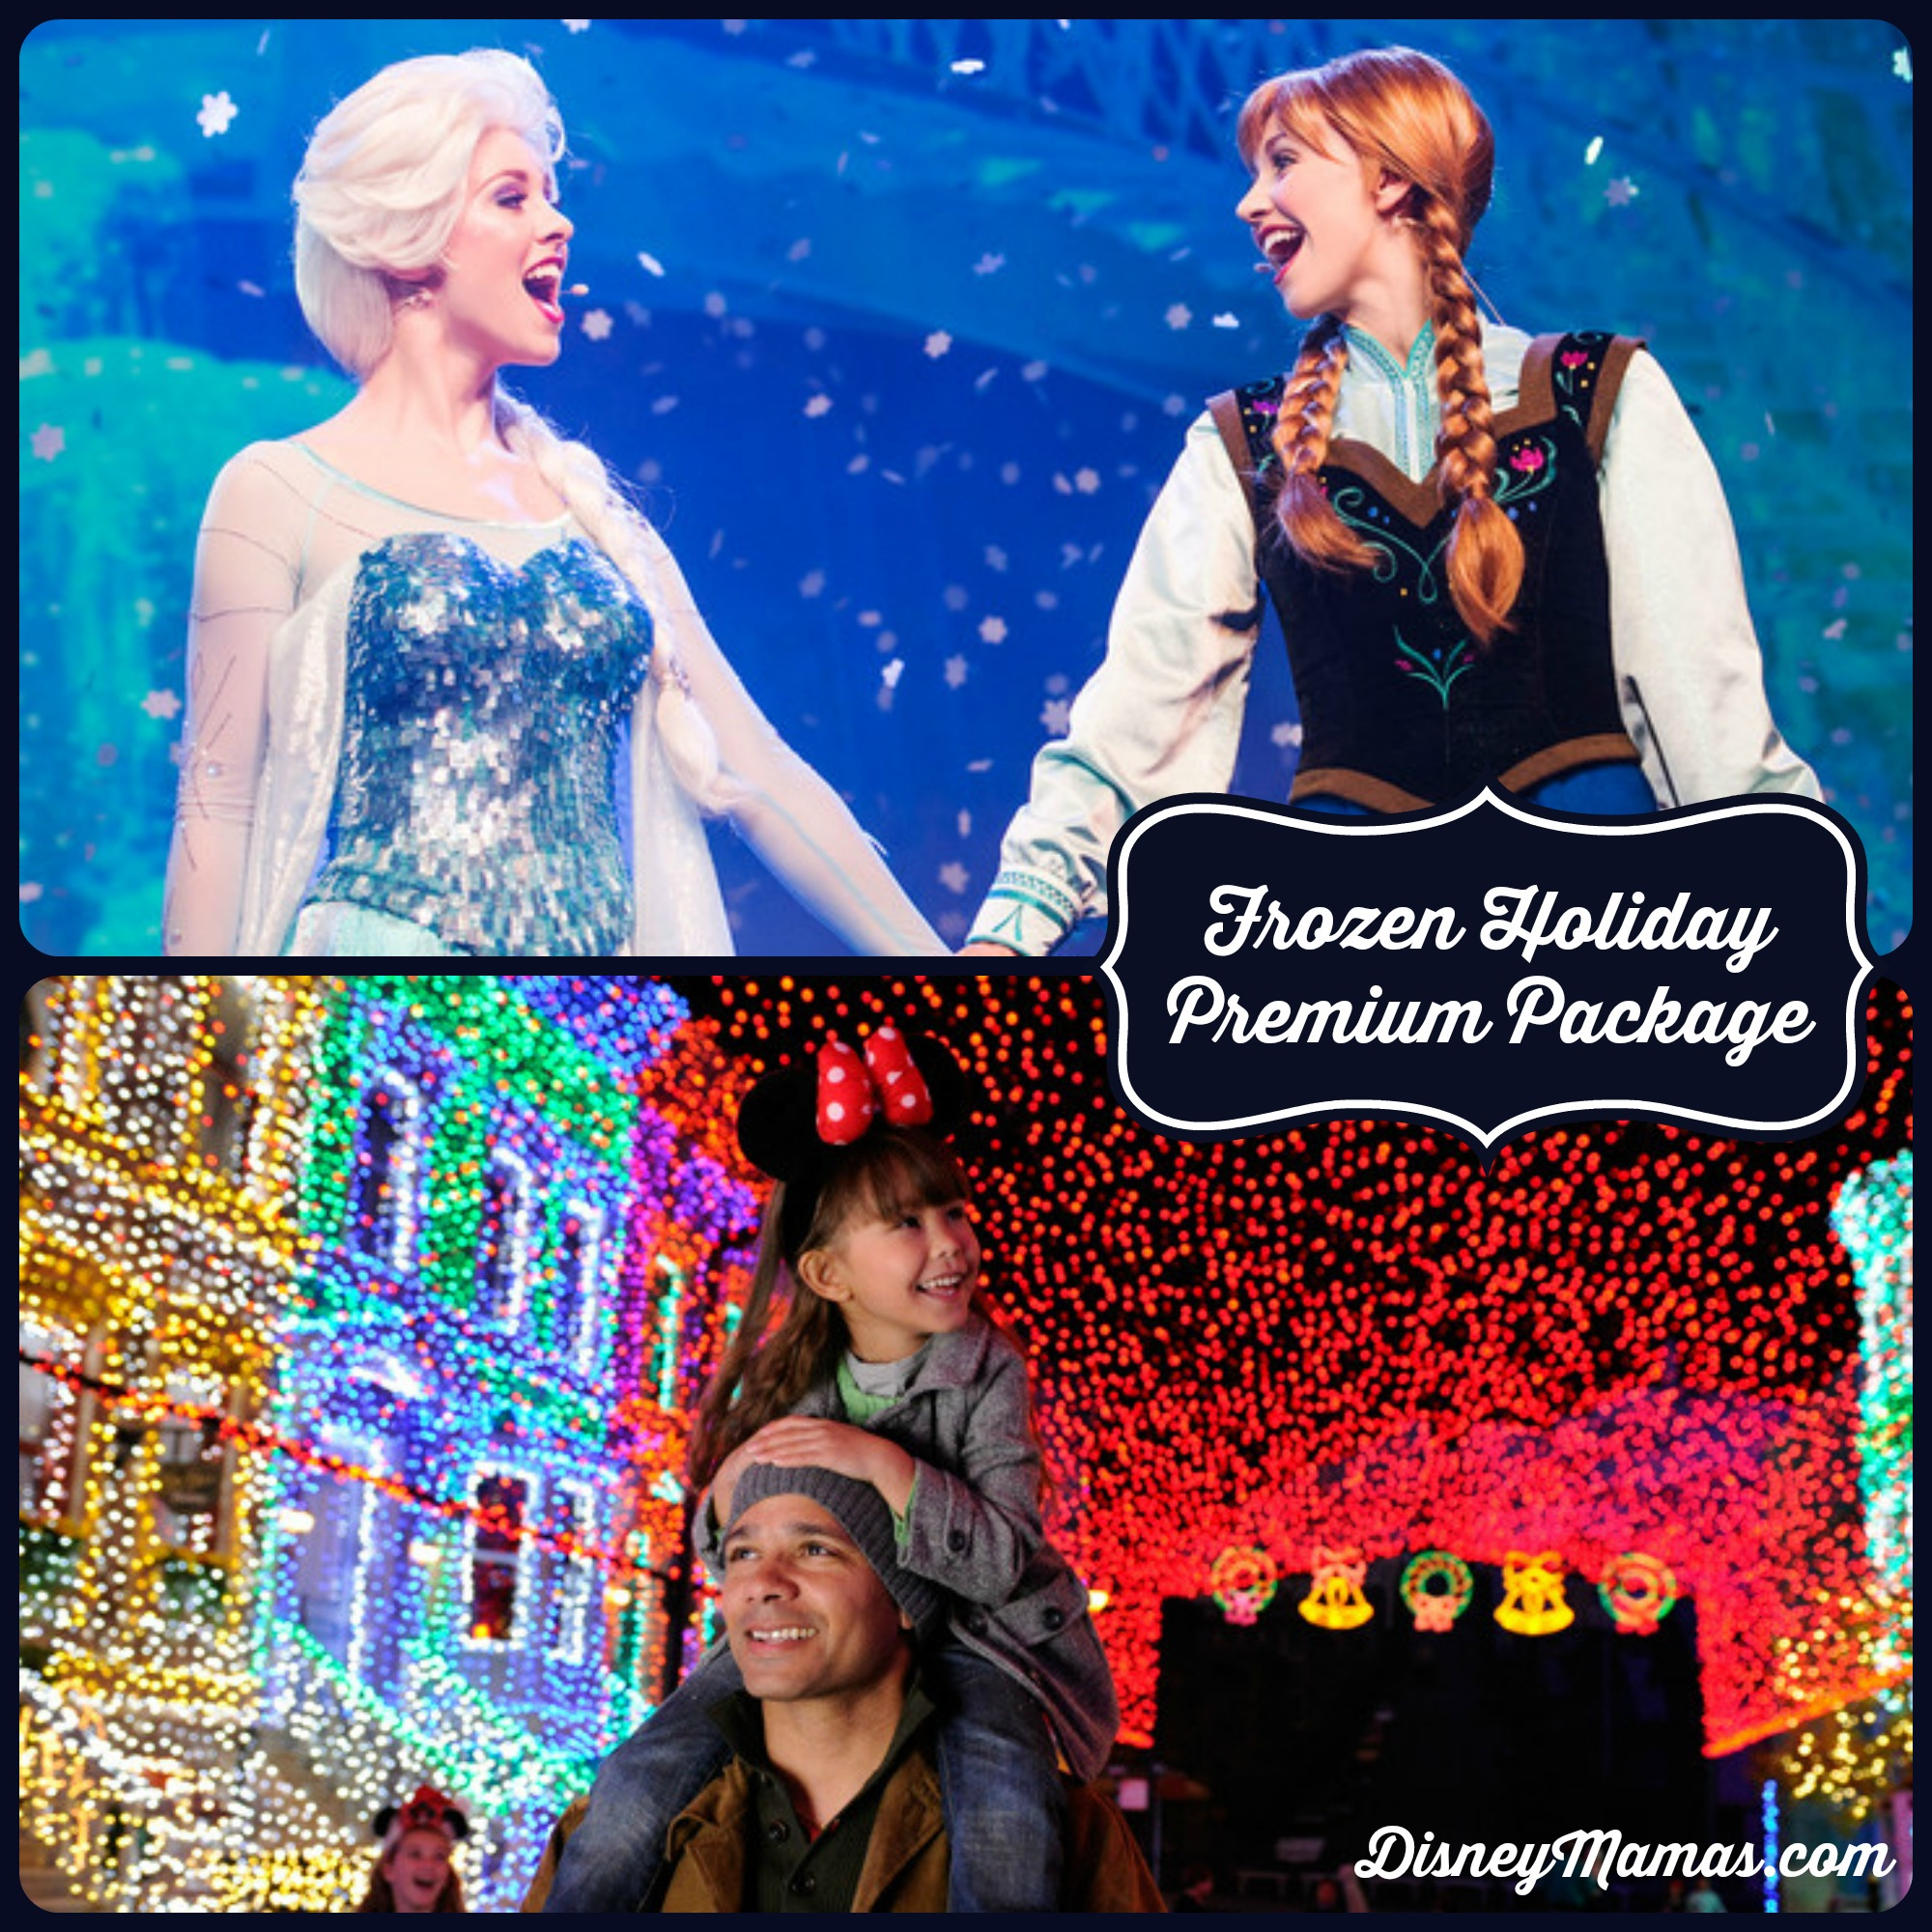 Frozen Holiday Premium Package | Disney Mamas